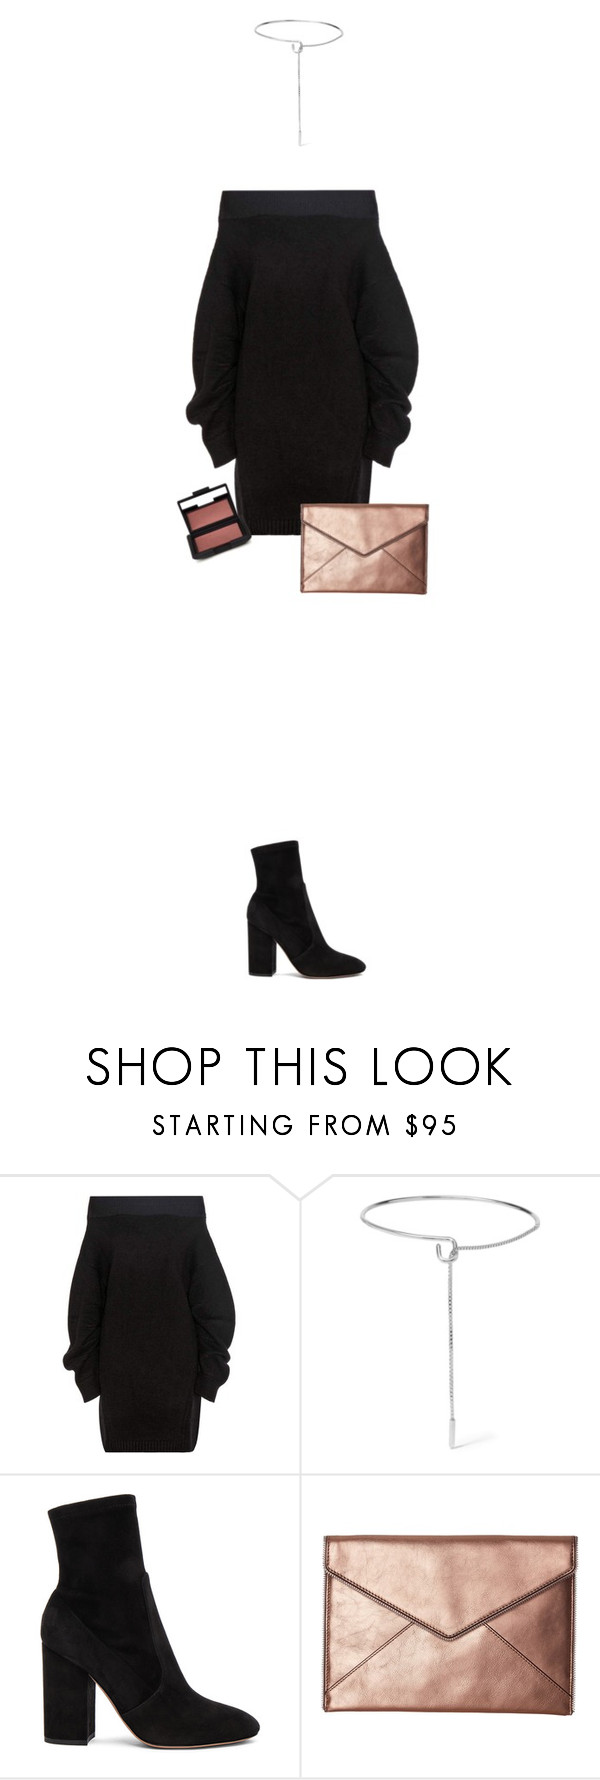 """✖️/ 31.10"" by denifreebairn ❤ liked on Polyvore featuring Opening Ceremony, Eddie Borgo, Valentino, Rebecca Minkoff and NARS Cosmetics"